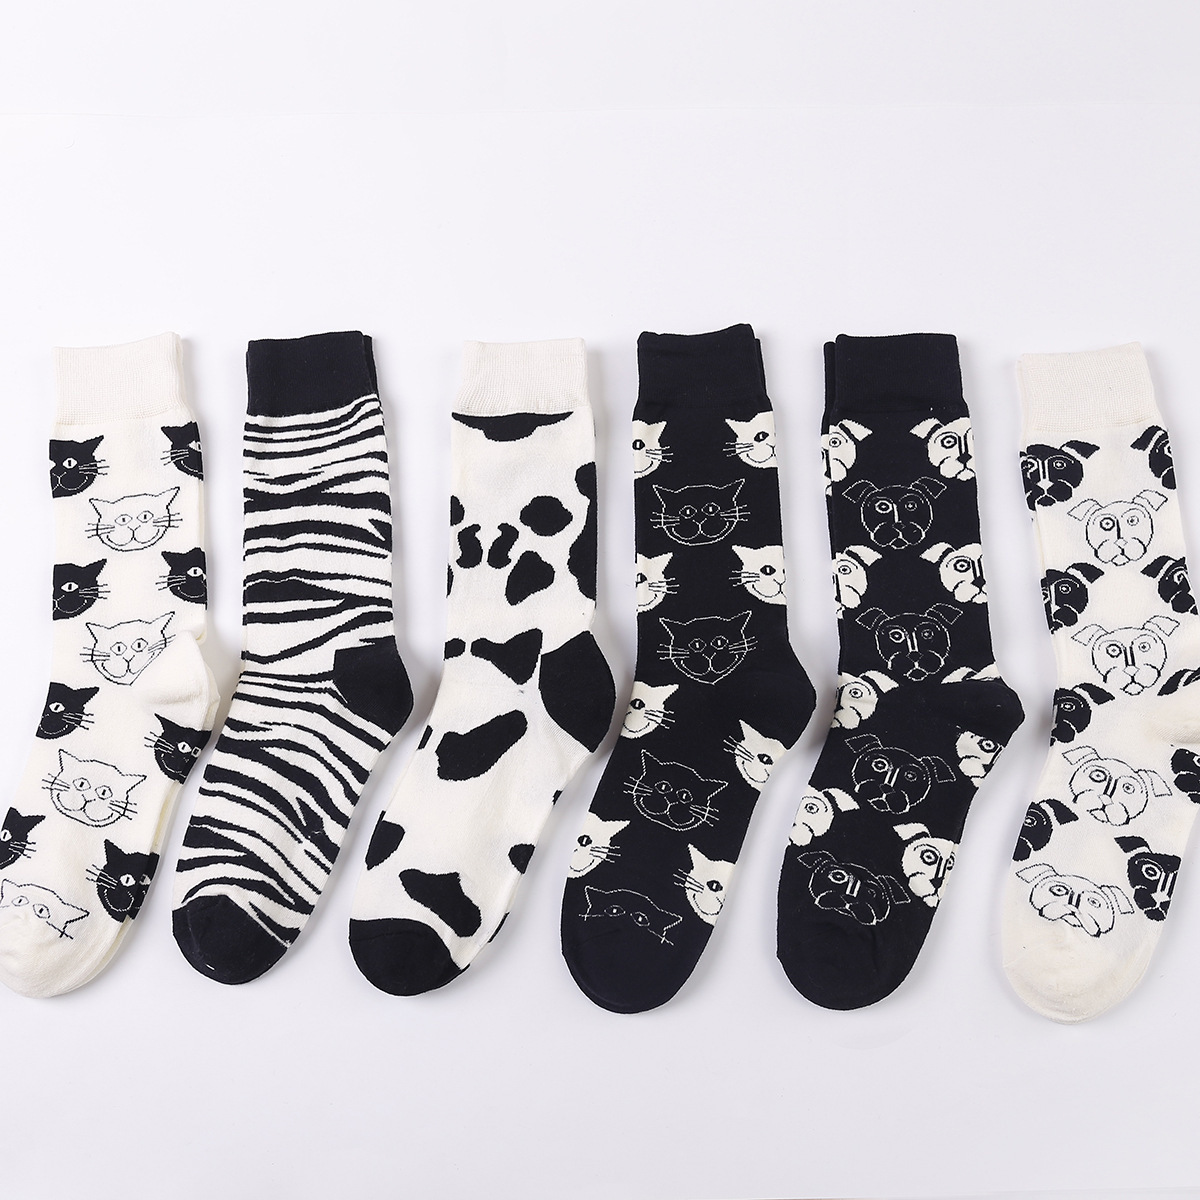 PEONFLY Cartoon Creativity Leopard Cat Animal Harajuku Crazy Cotton Funny Women Casual   Socks   Men Novelty Happy Short   Socks